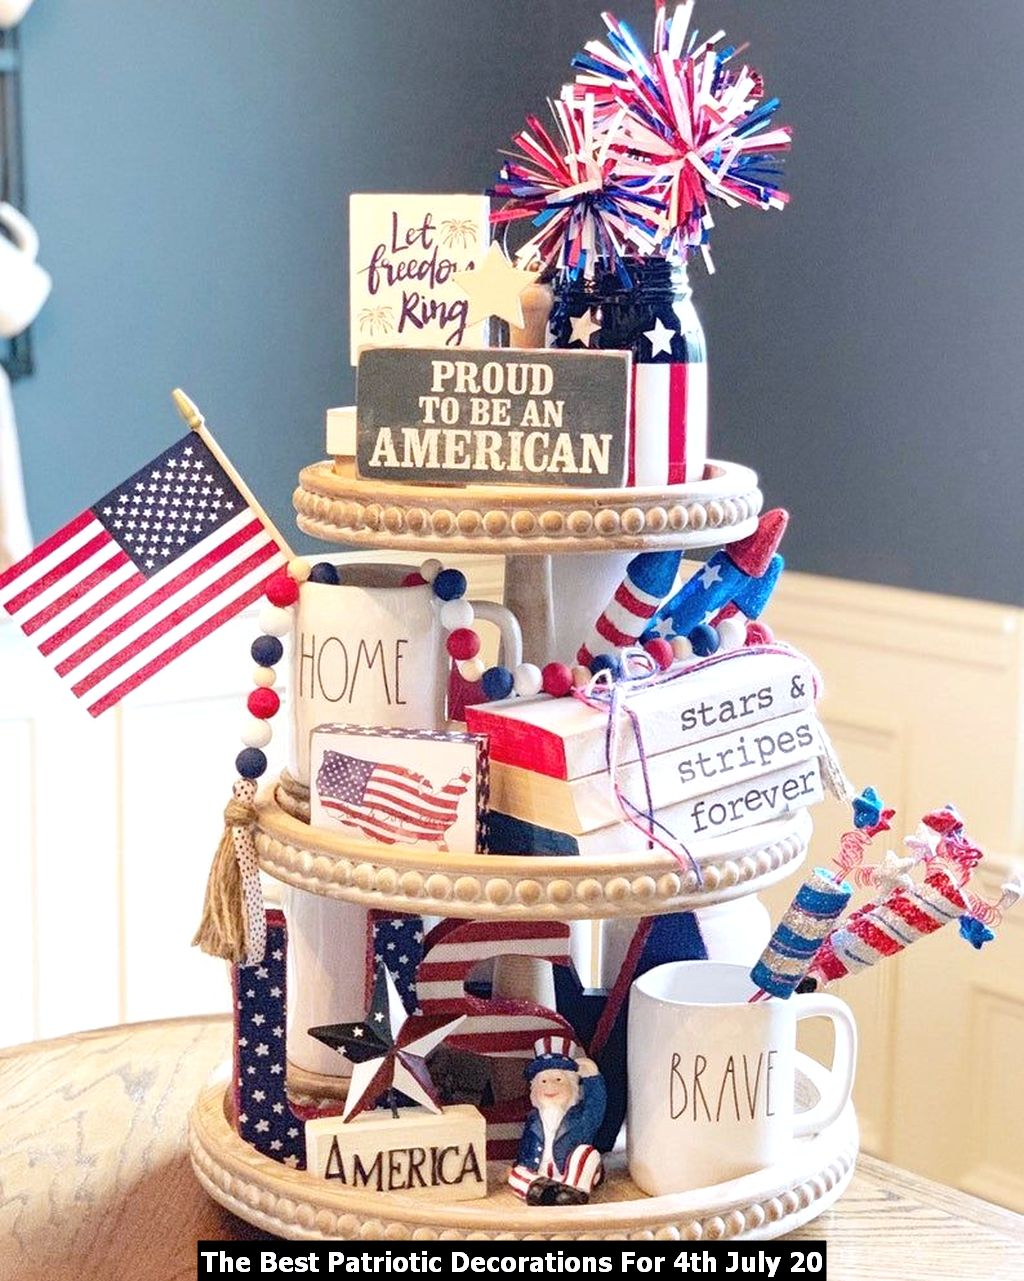 The Best Patriotic Decorations For 4th July 20